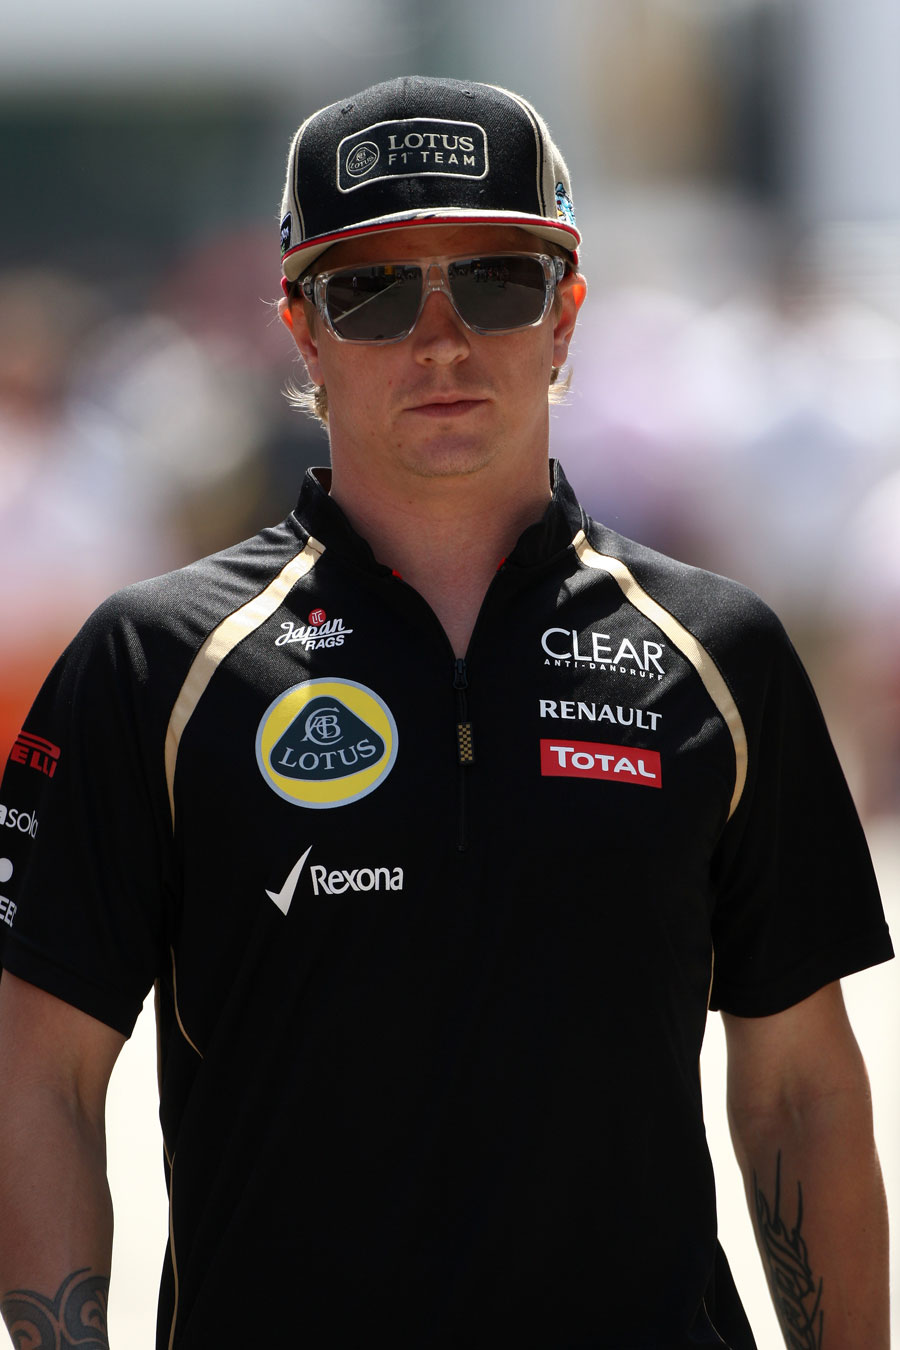 Kimi Raikkonen enjoys the sunshine in the paddock